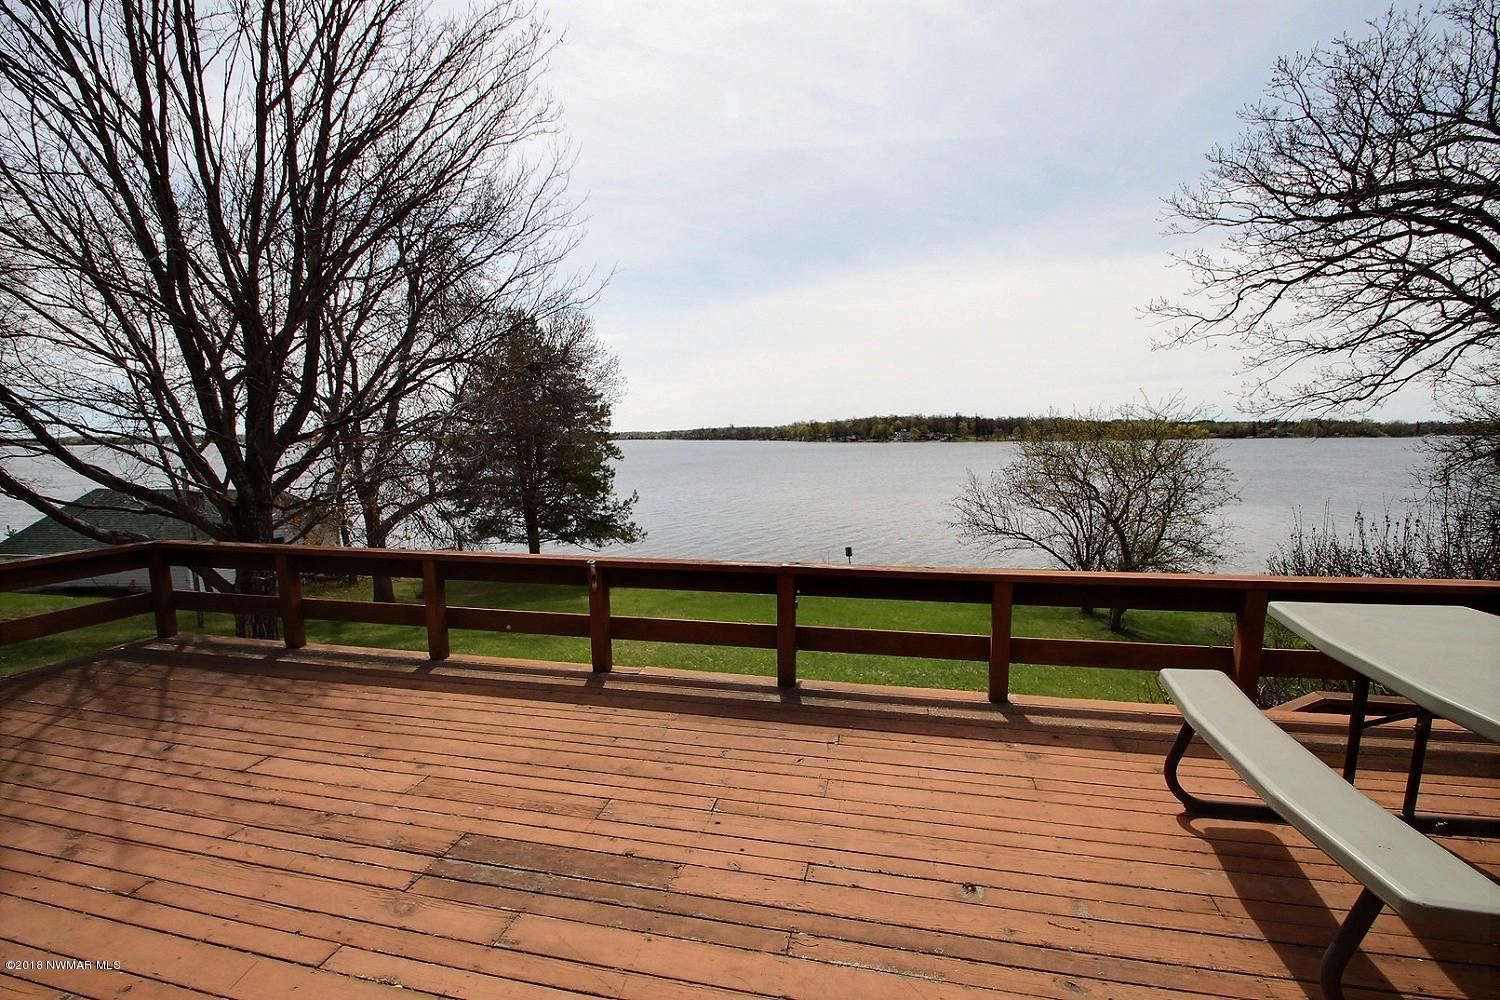 Enjoy a spacious deck overlooking the gorgeous level yard perfect for yard games. Fire up the grill and entertain with views of Maple Lake!